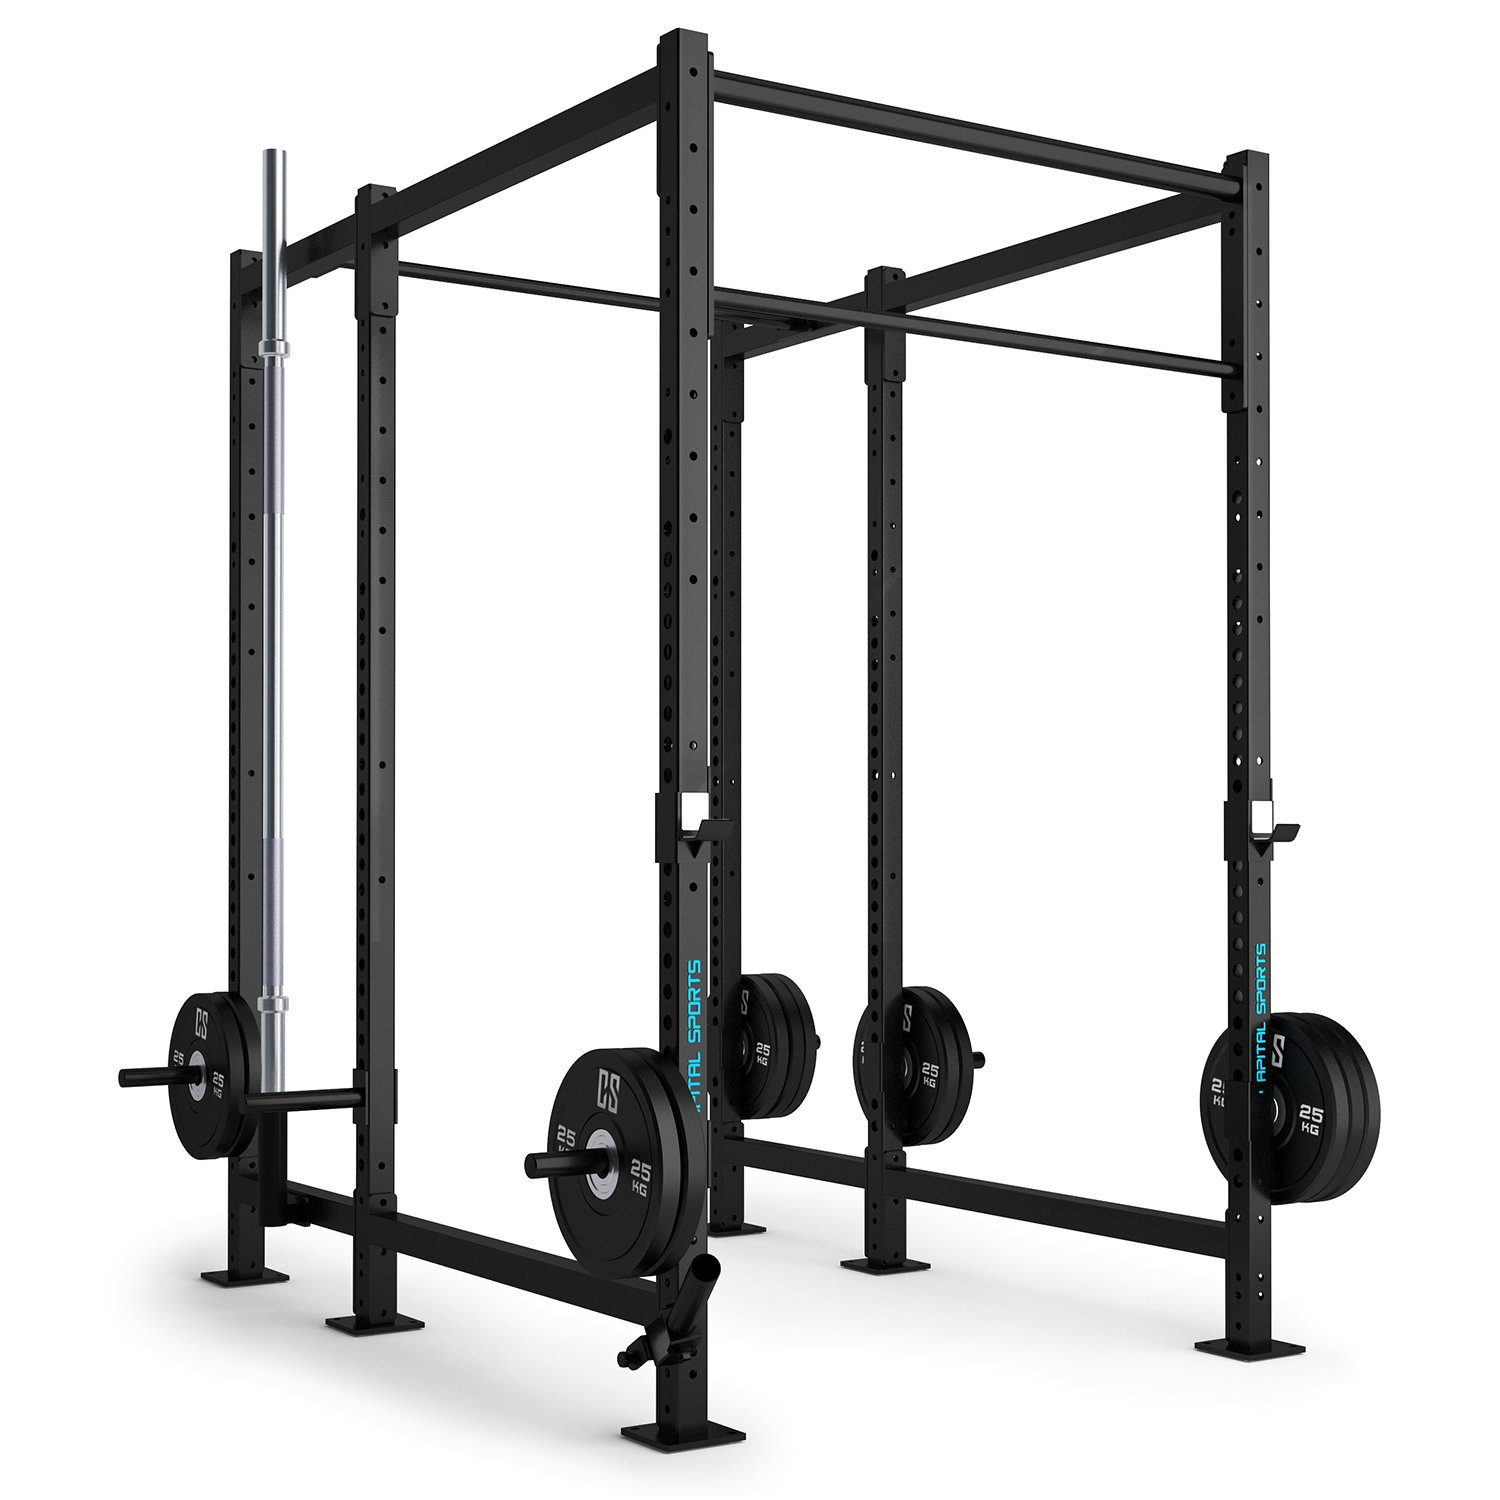 CAPITAL SPORTS Dominate Edition Set 11 Basis Rack musculación Rig ...